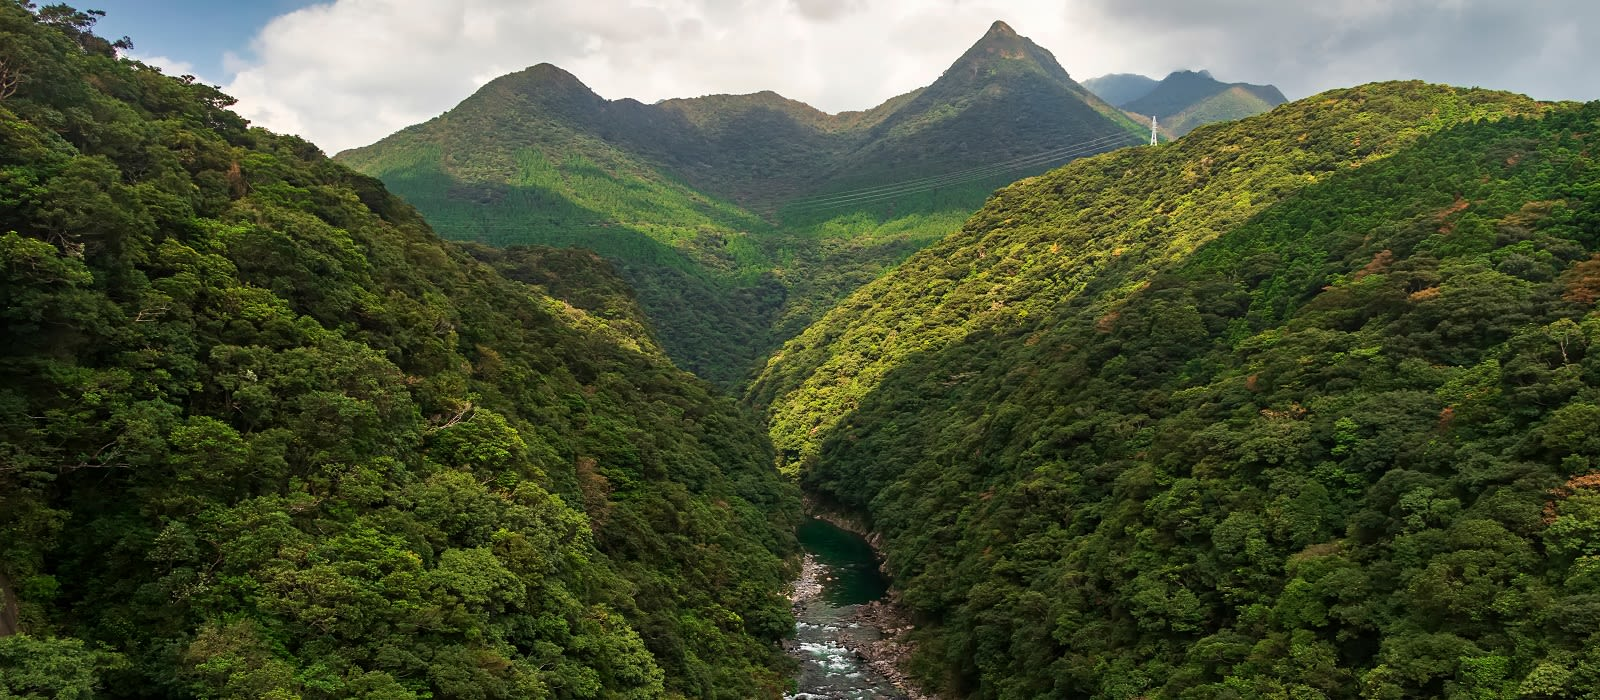 Landscapes and Legends of Kyushu Tour Trip 3